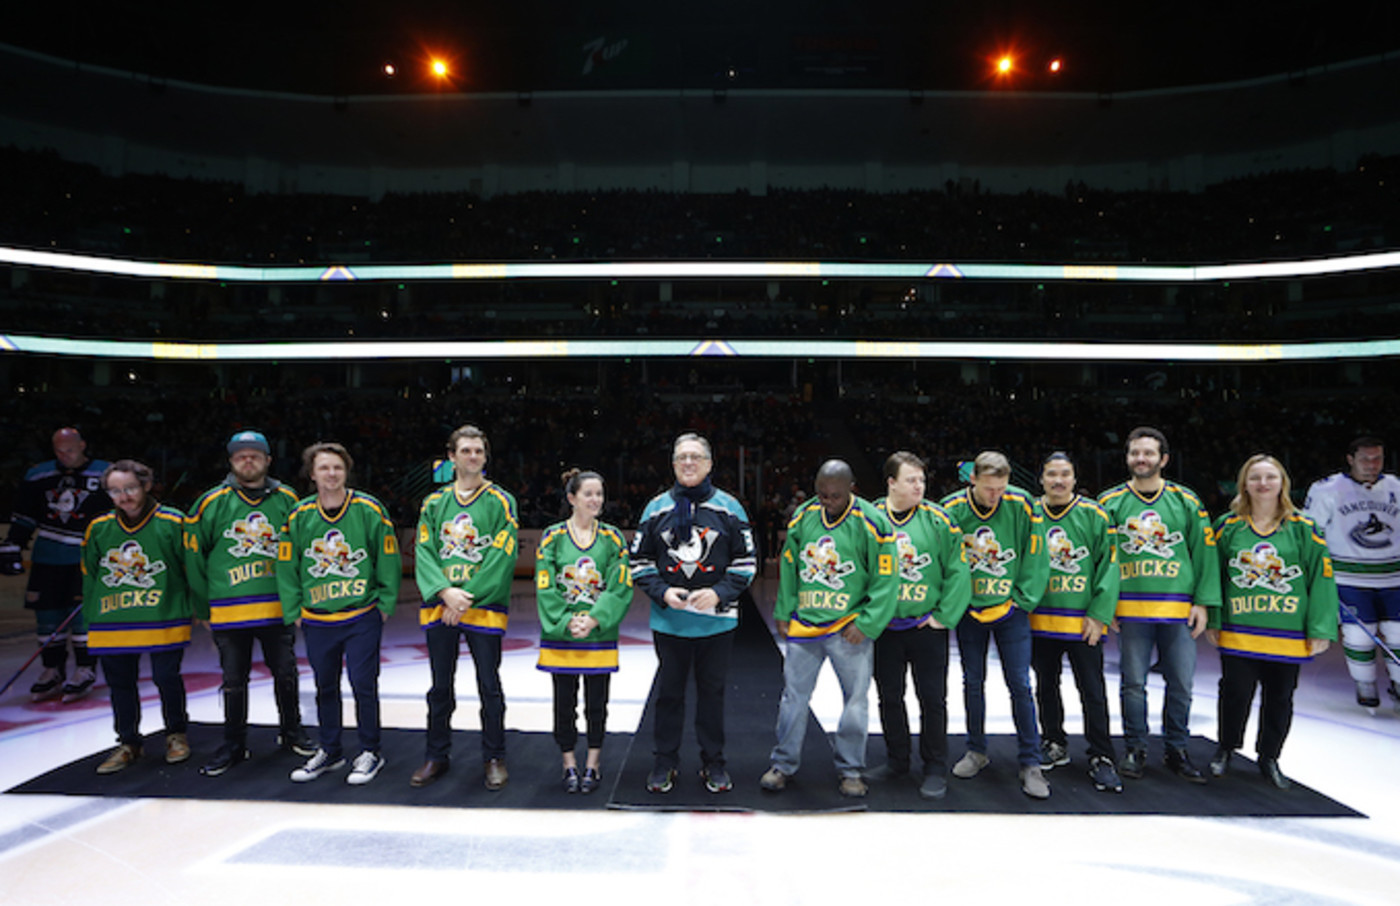 Members of the cast and crew from the original Mighty Ducks movie.